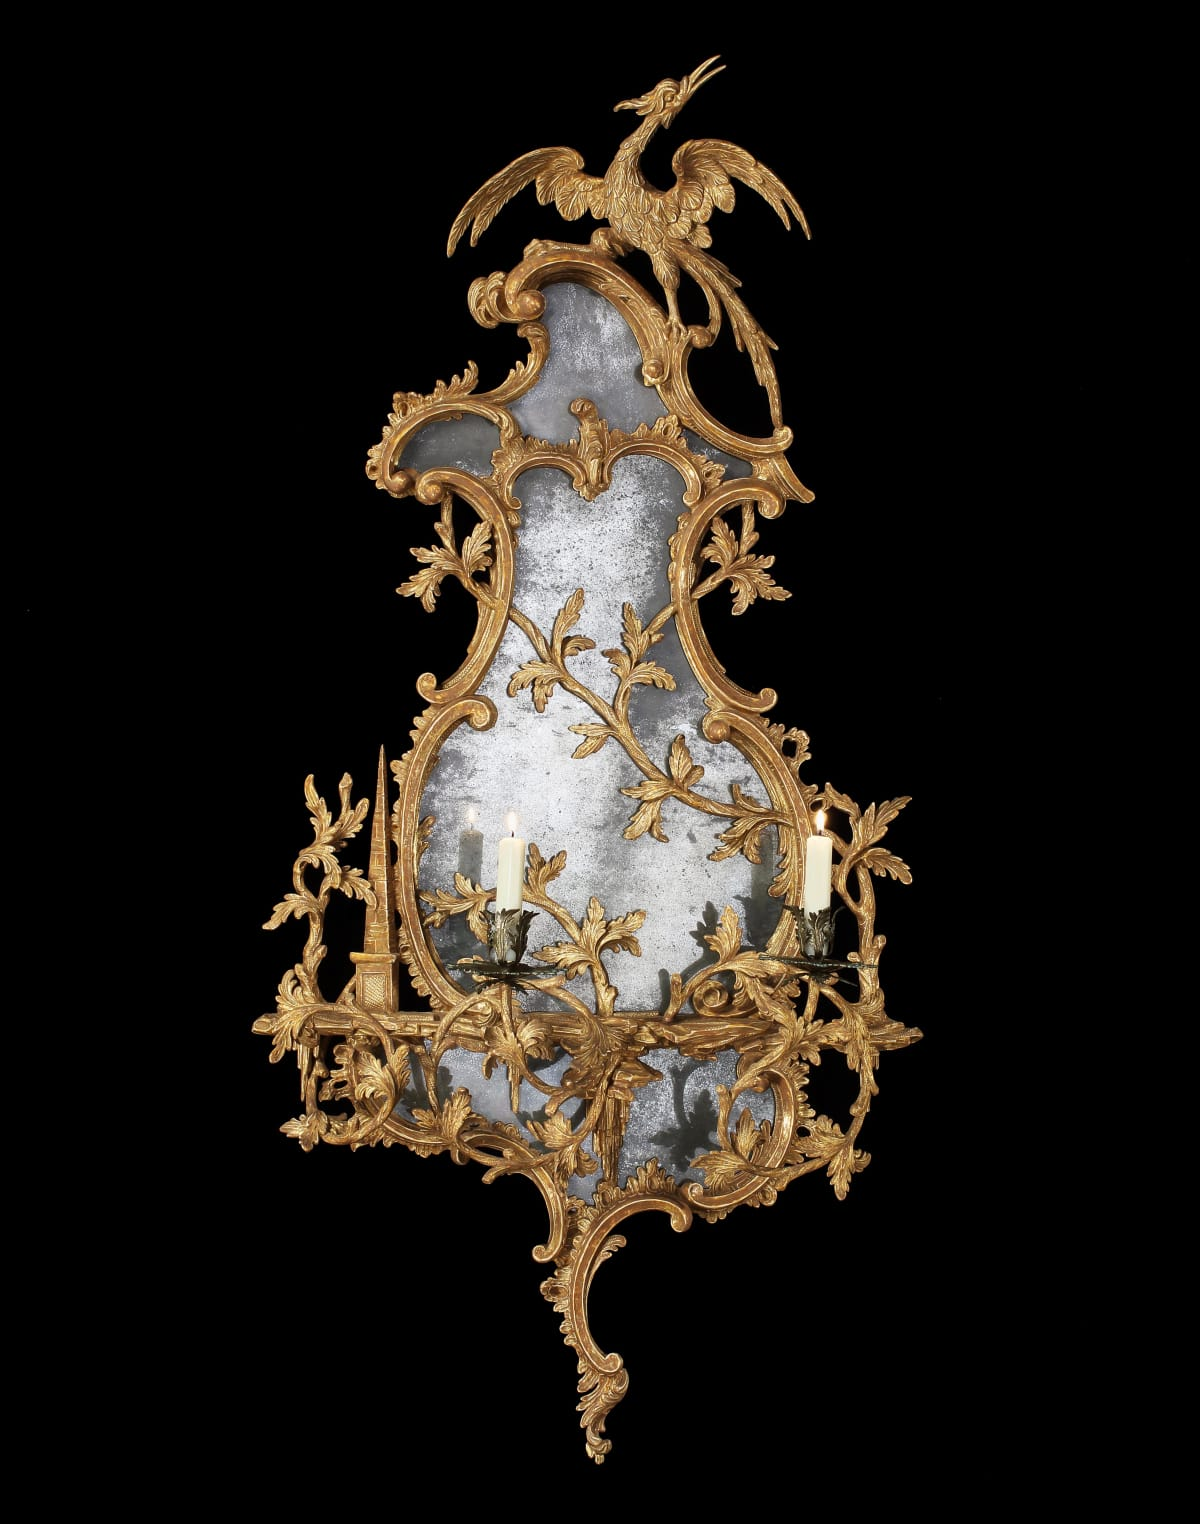 A GEORGE III GILTWOOD GIRANDOLE. ATTRIBUTED TO THOMAS JOHNSON, english, circa 1765